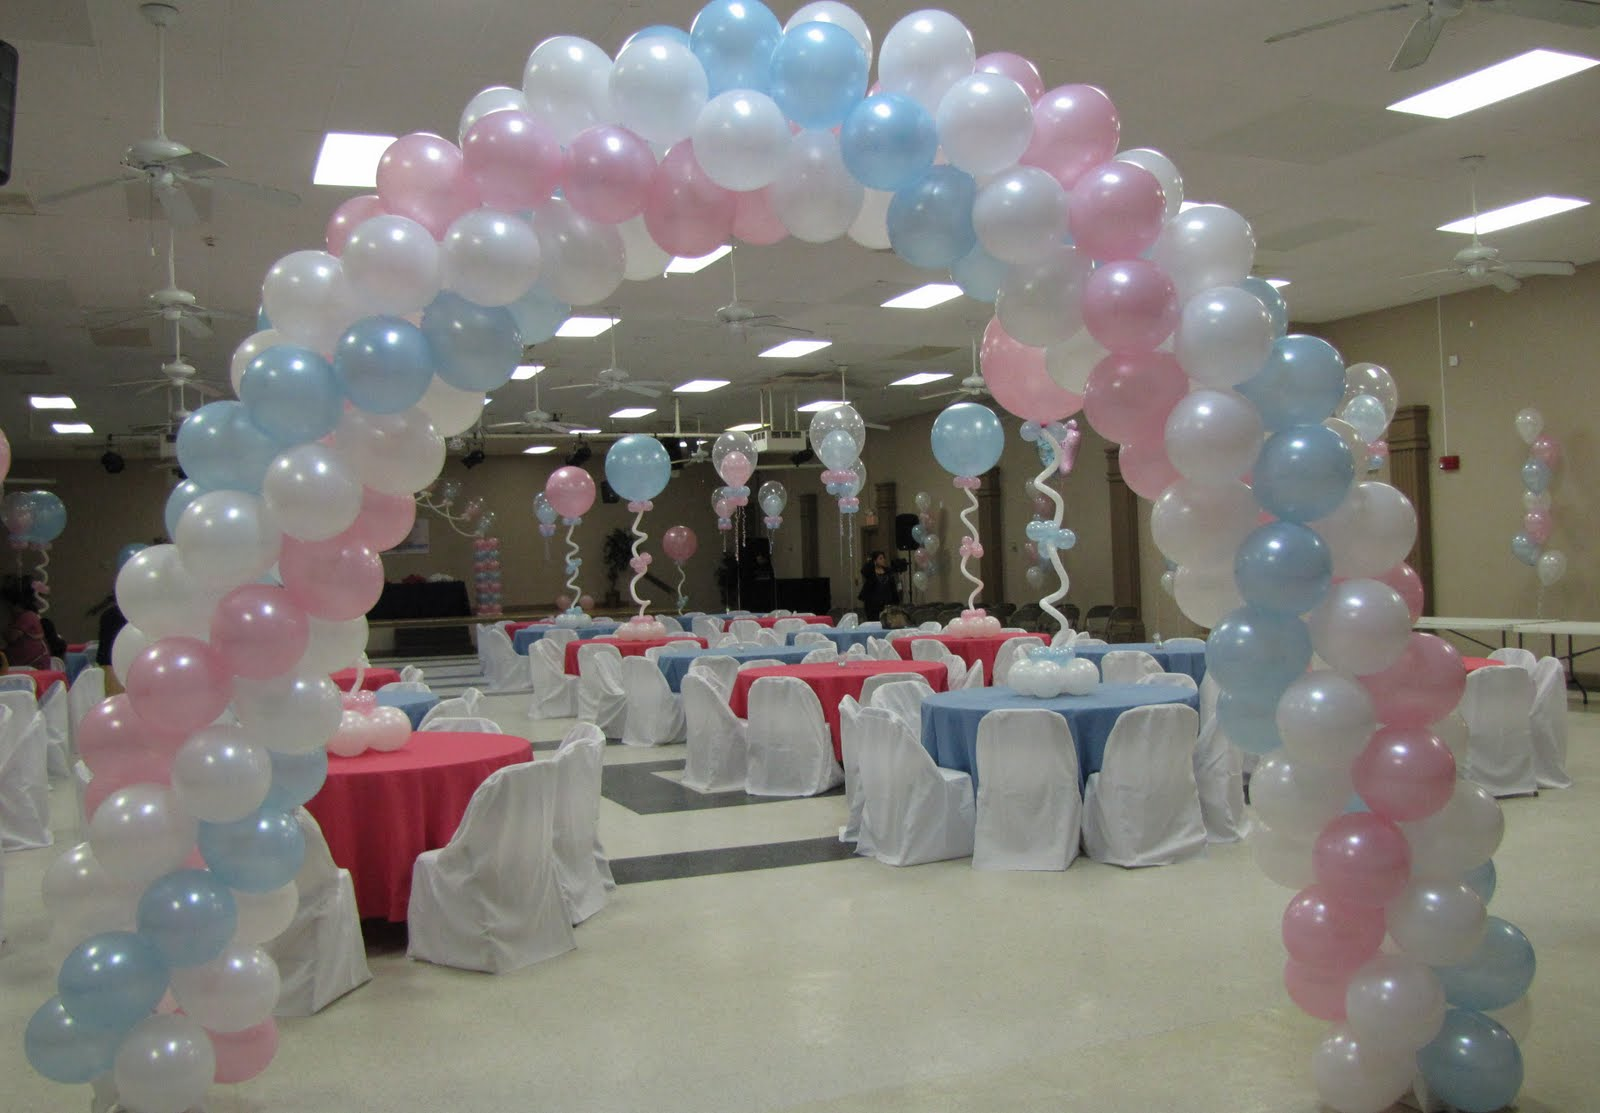 Party people event decorating company baby shower ocala fl for Baby decoration ideas for shower